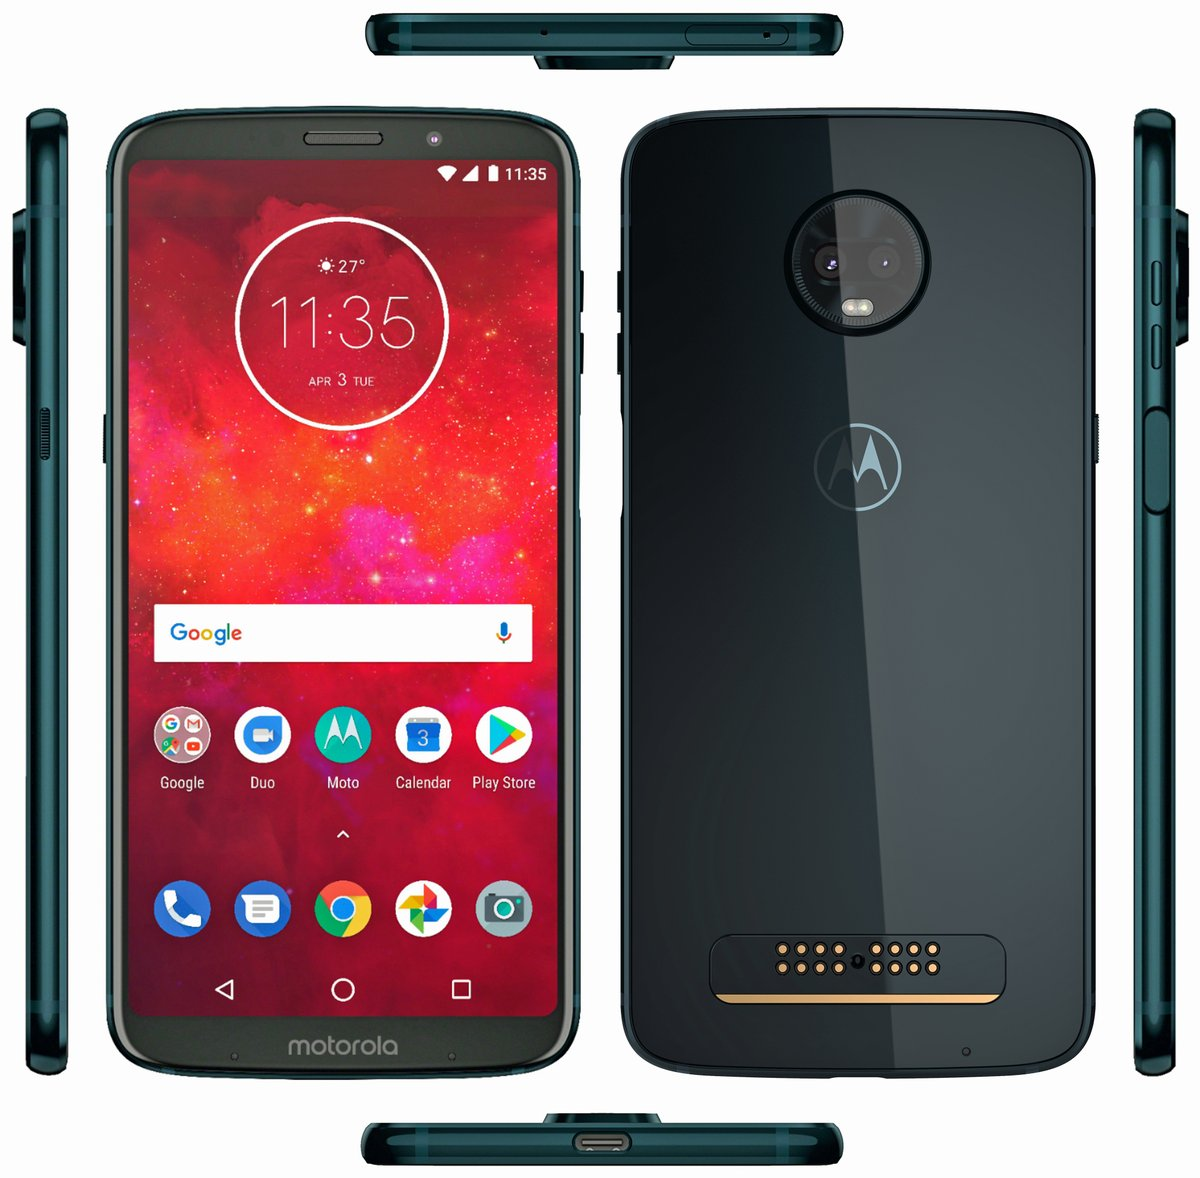 Moto Z3 Play render reveals device in Deep Indigo shades